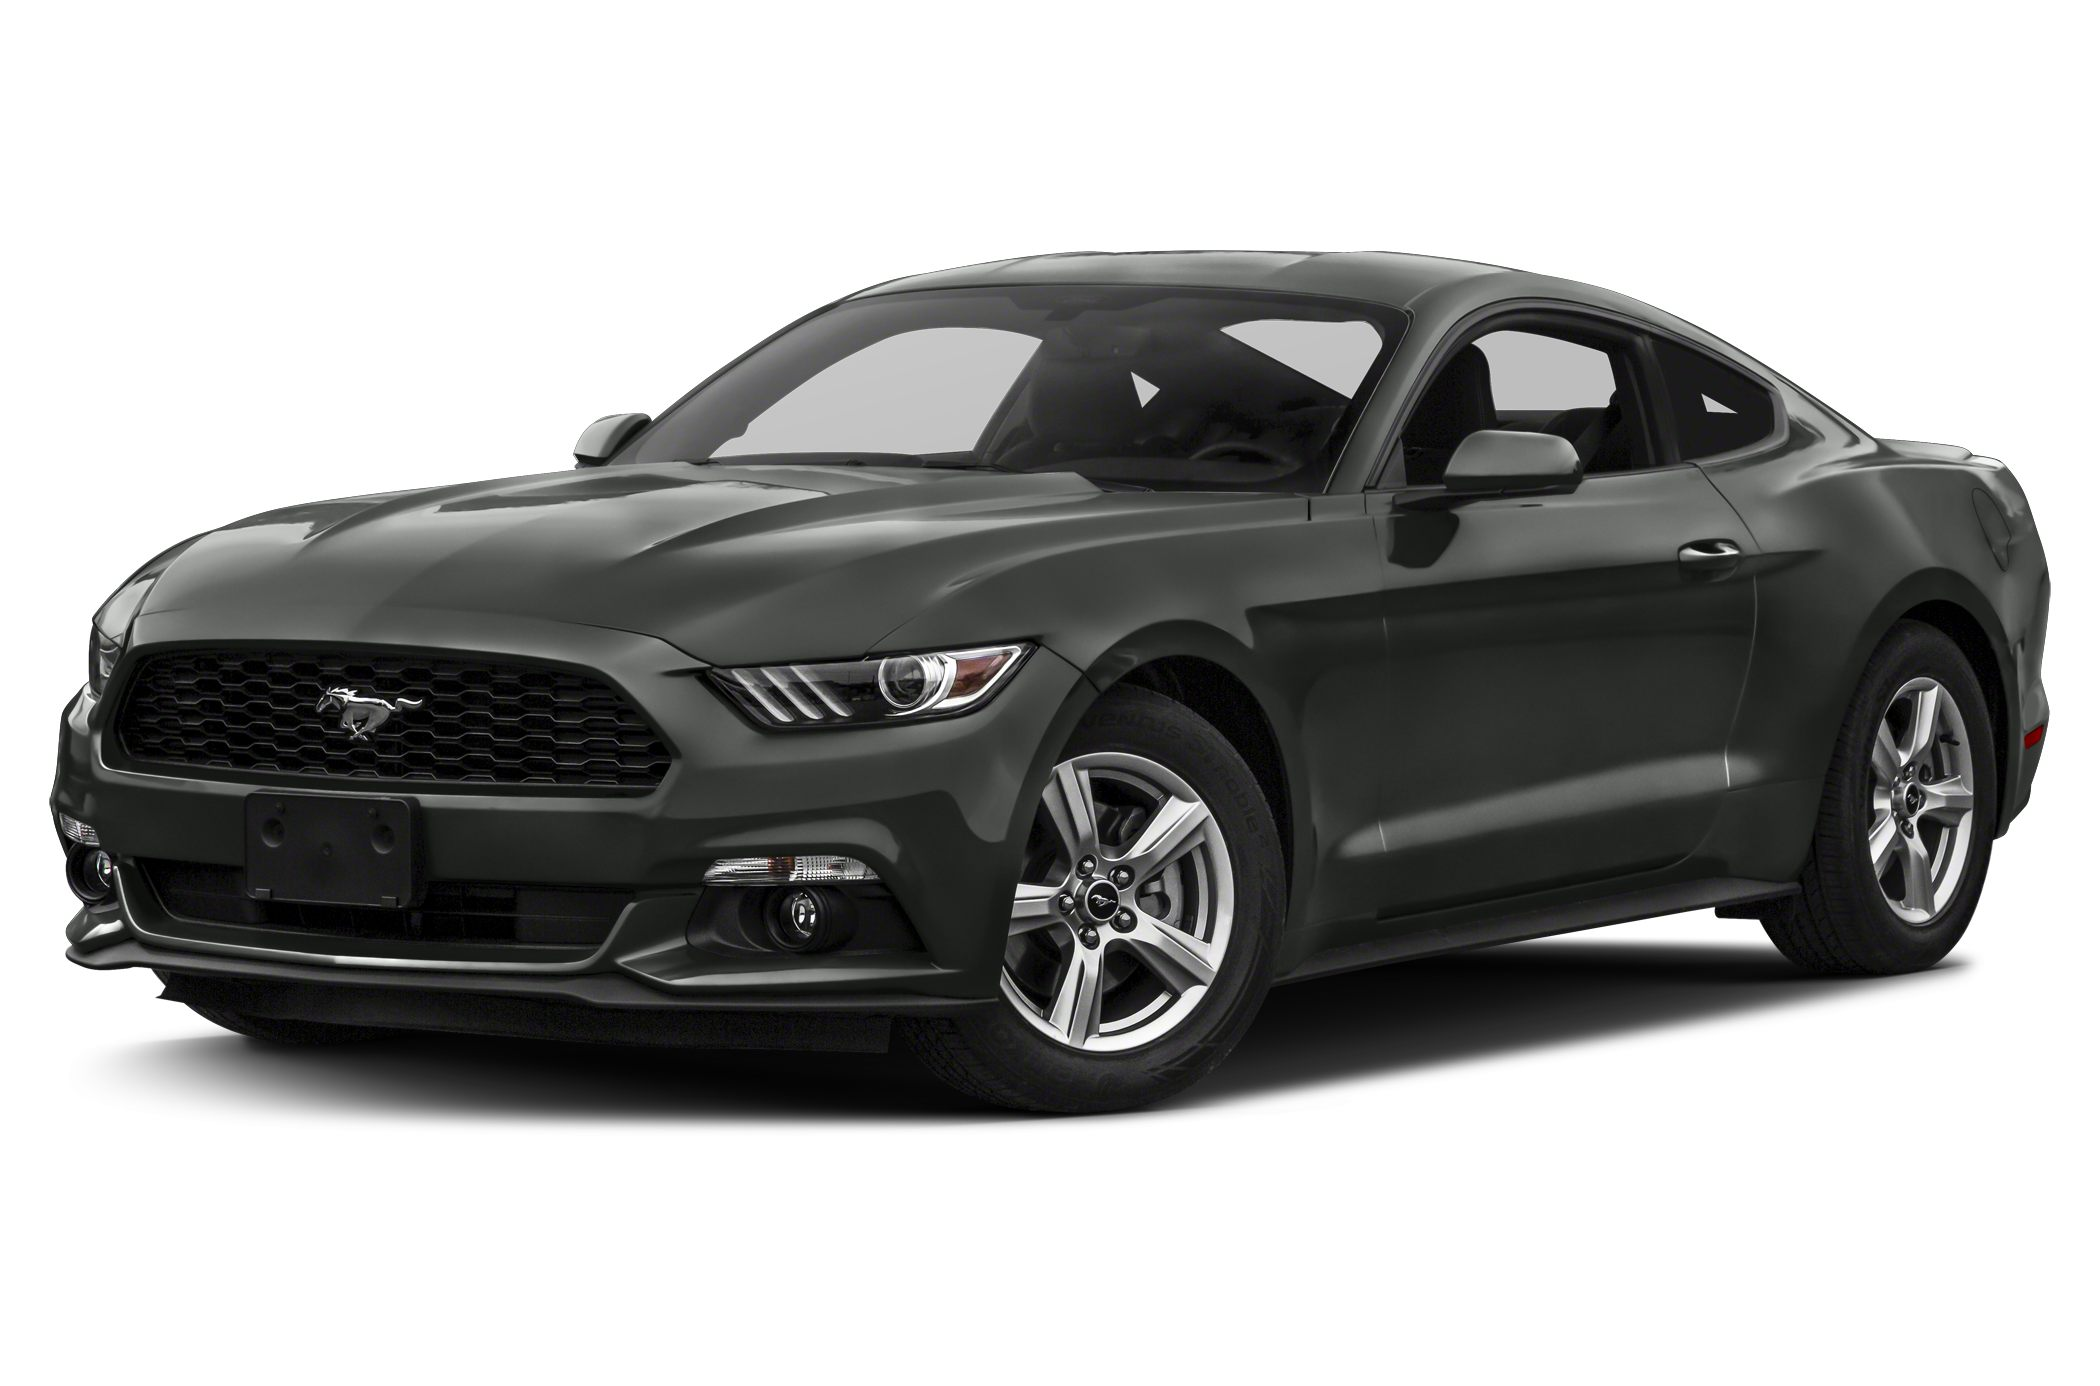 2017 Ford Mustang  The Ford Mustang is an American classic that lives on The body has been design